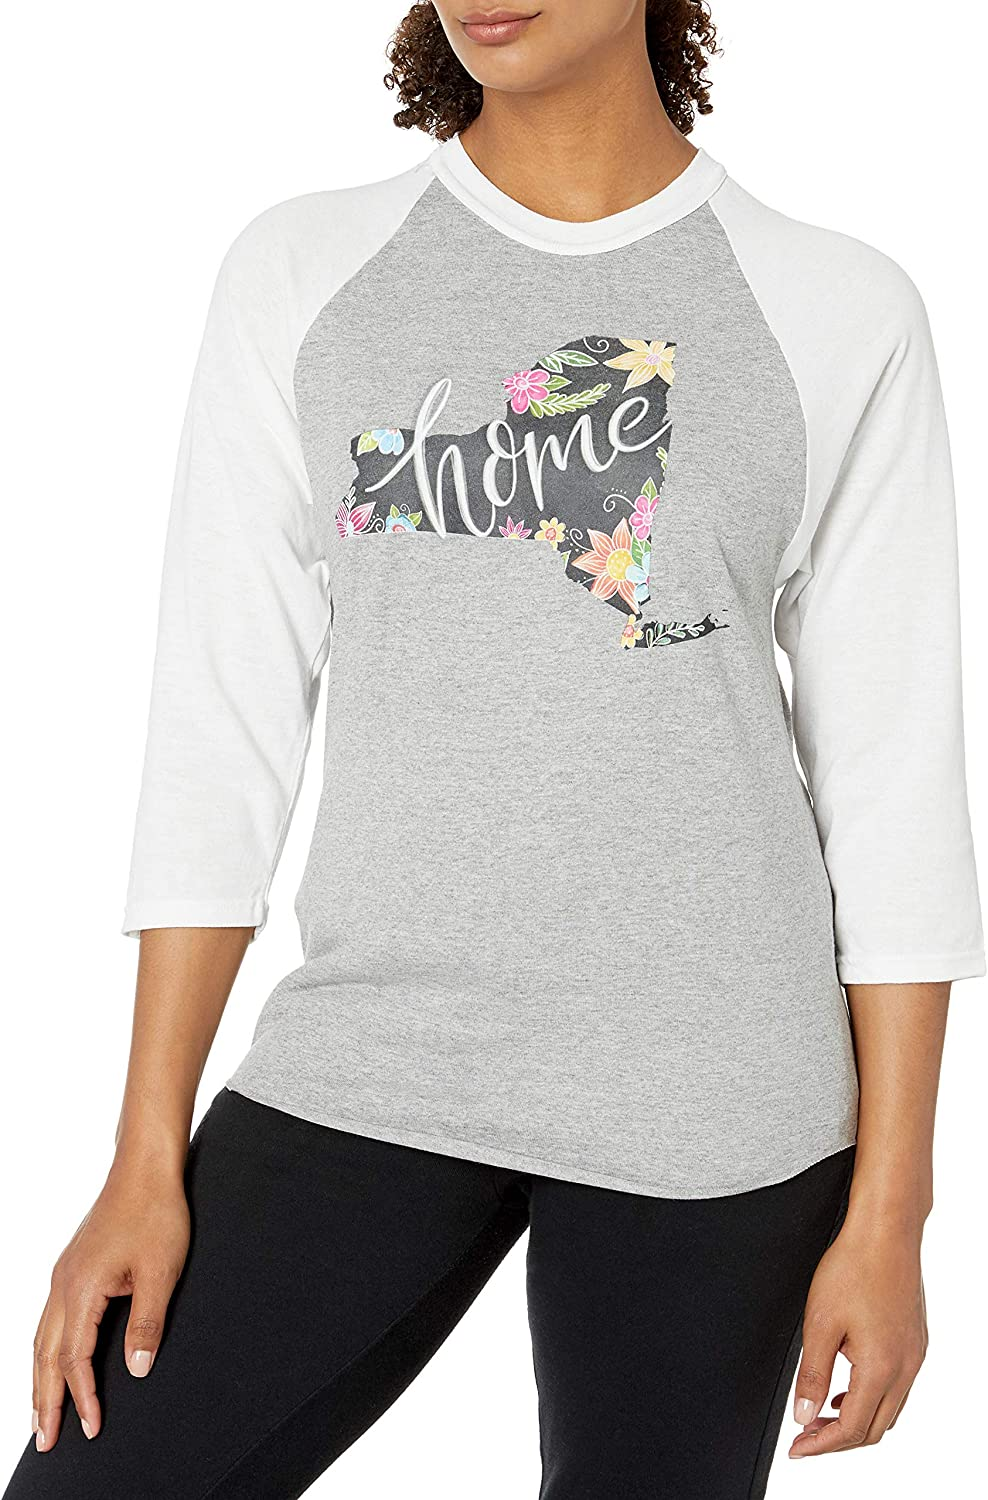 Soffe Women's T-Shirt